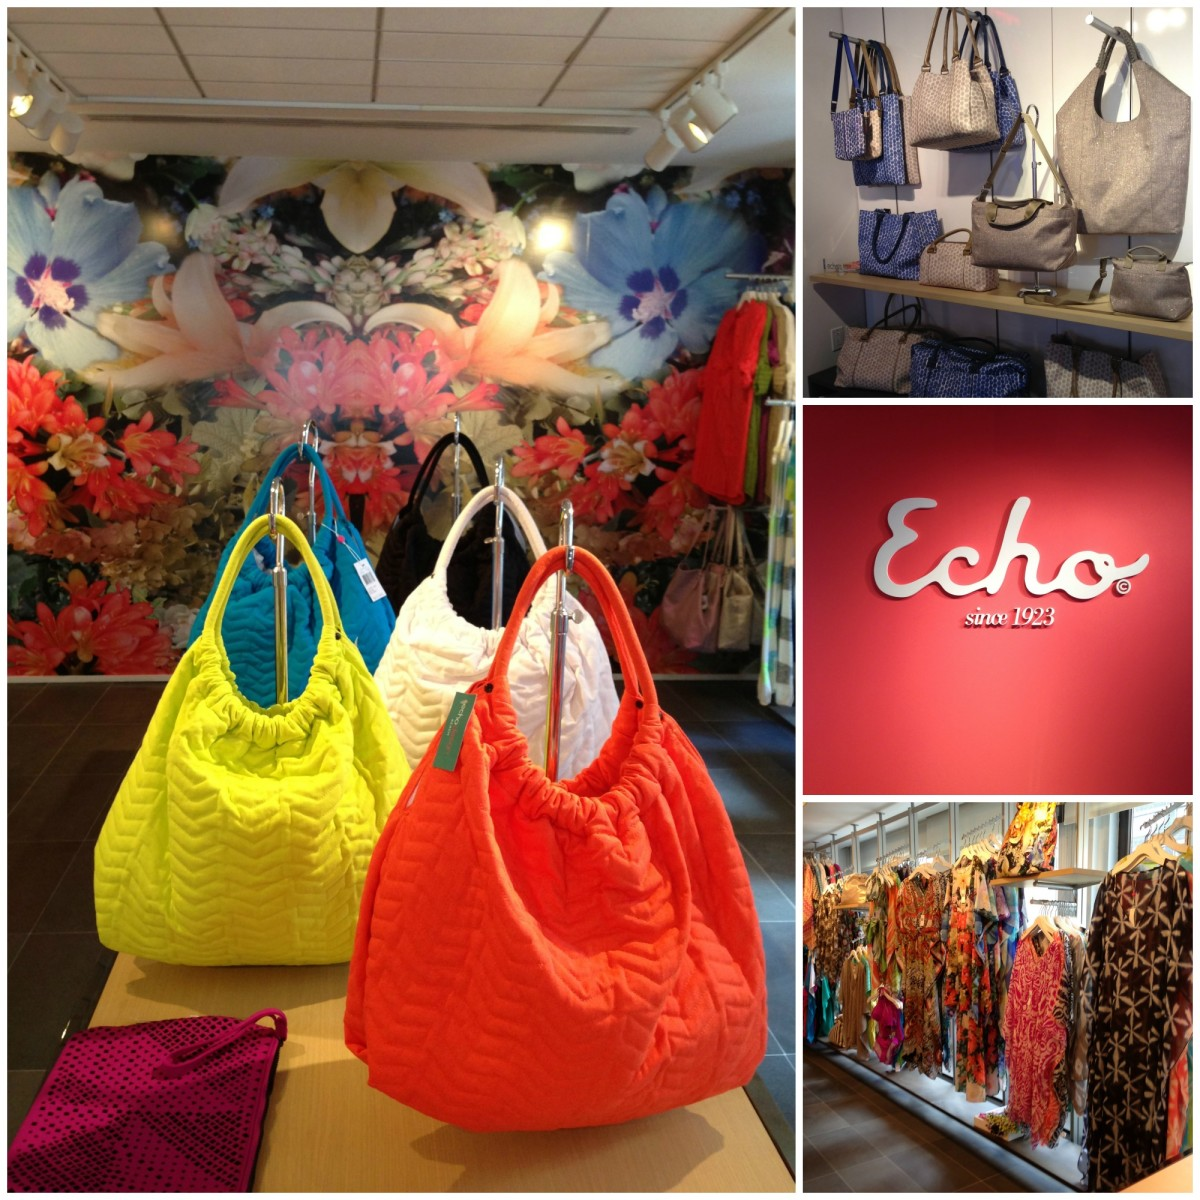 echo spring preview, bags, fashion,